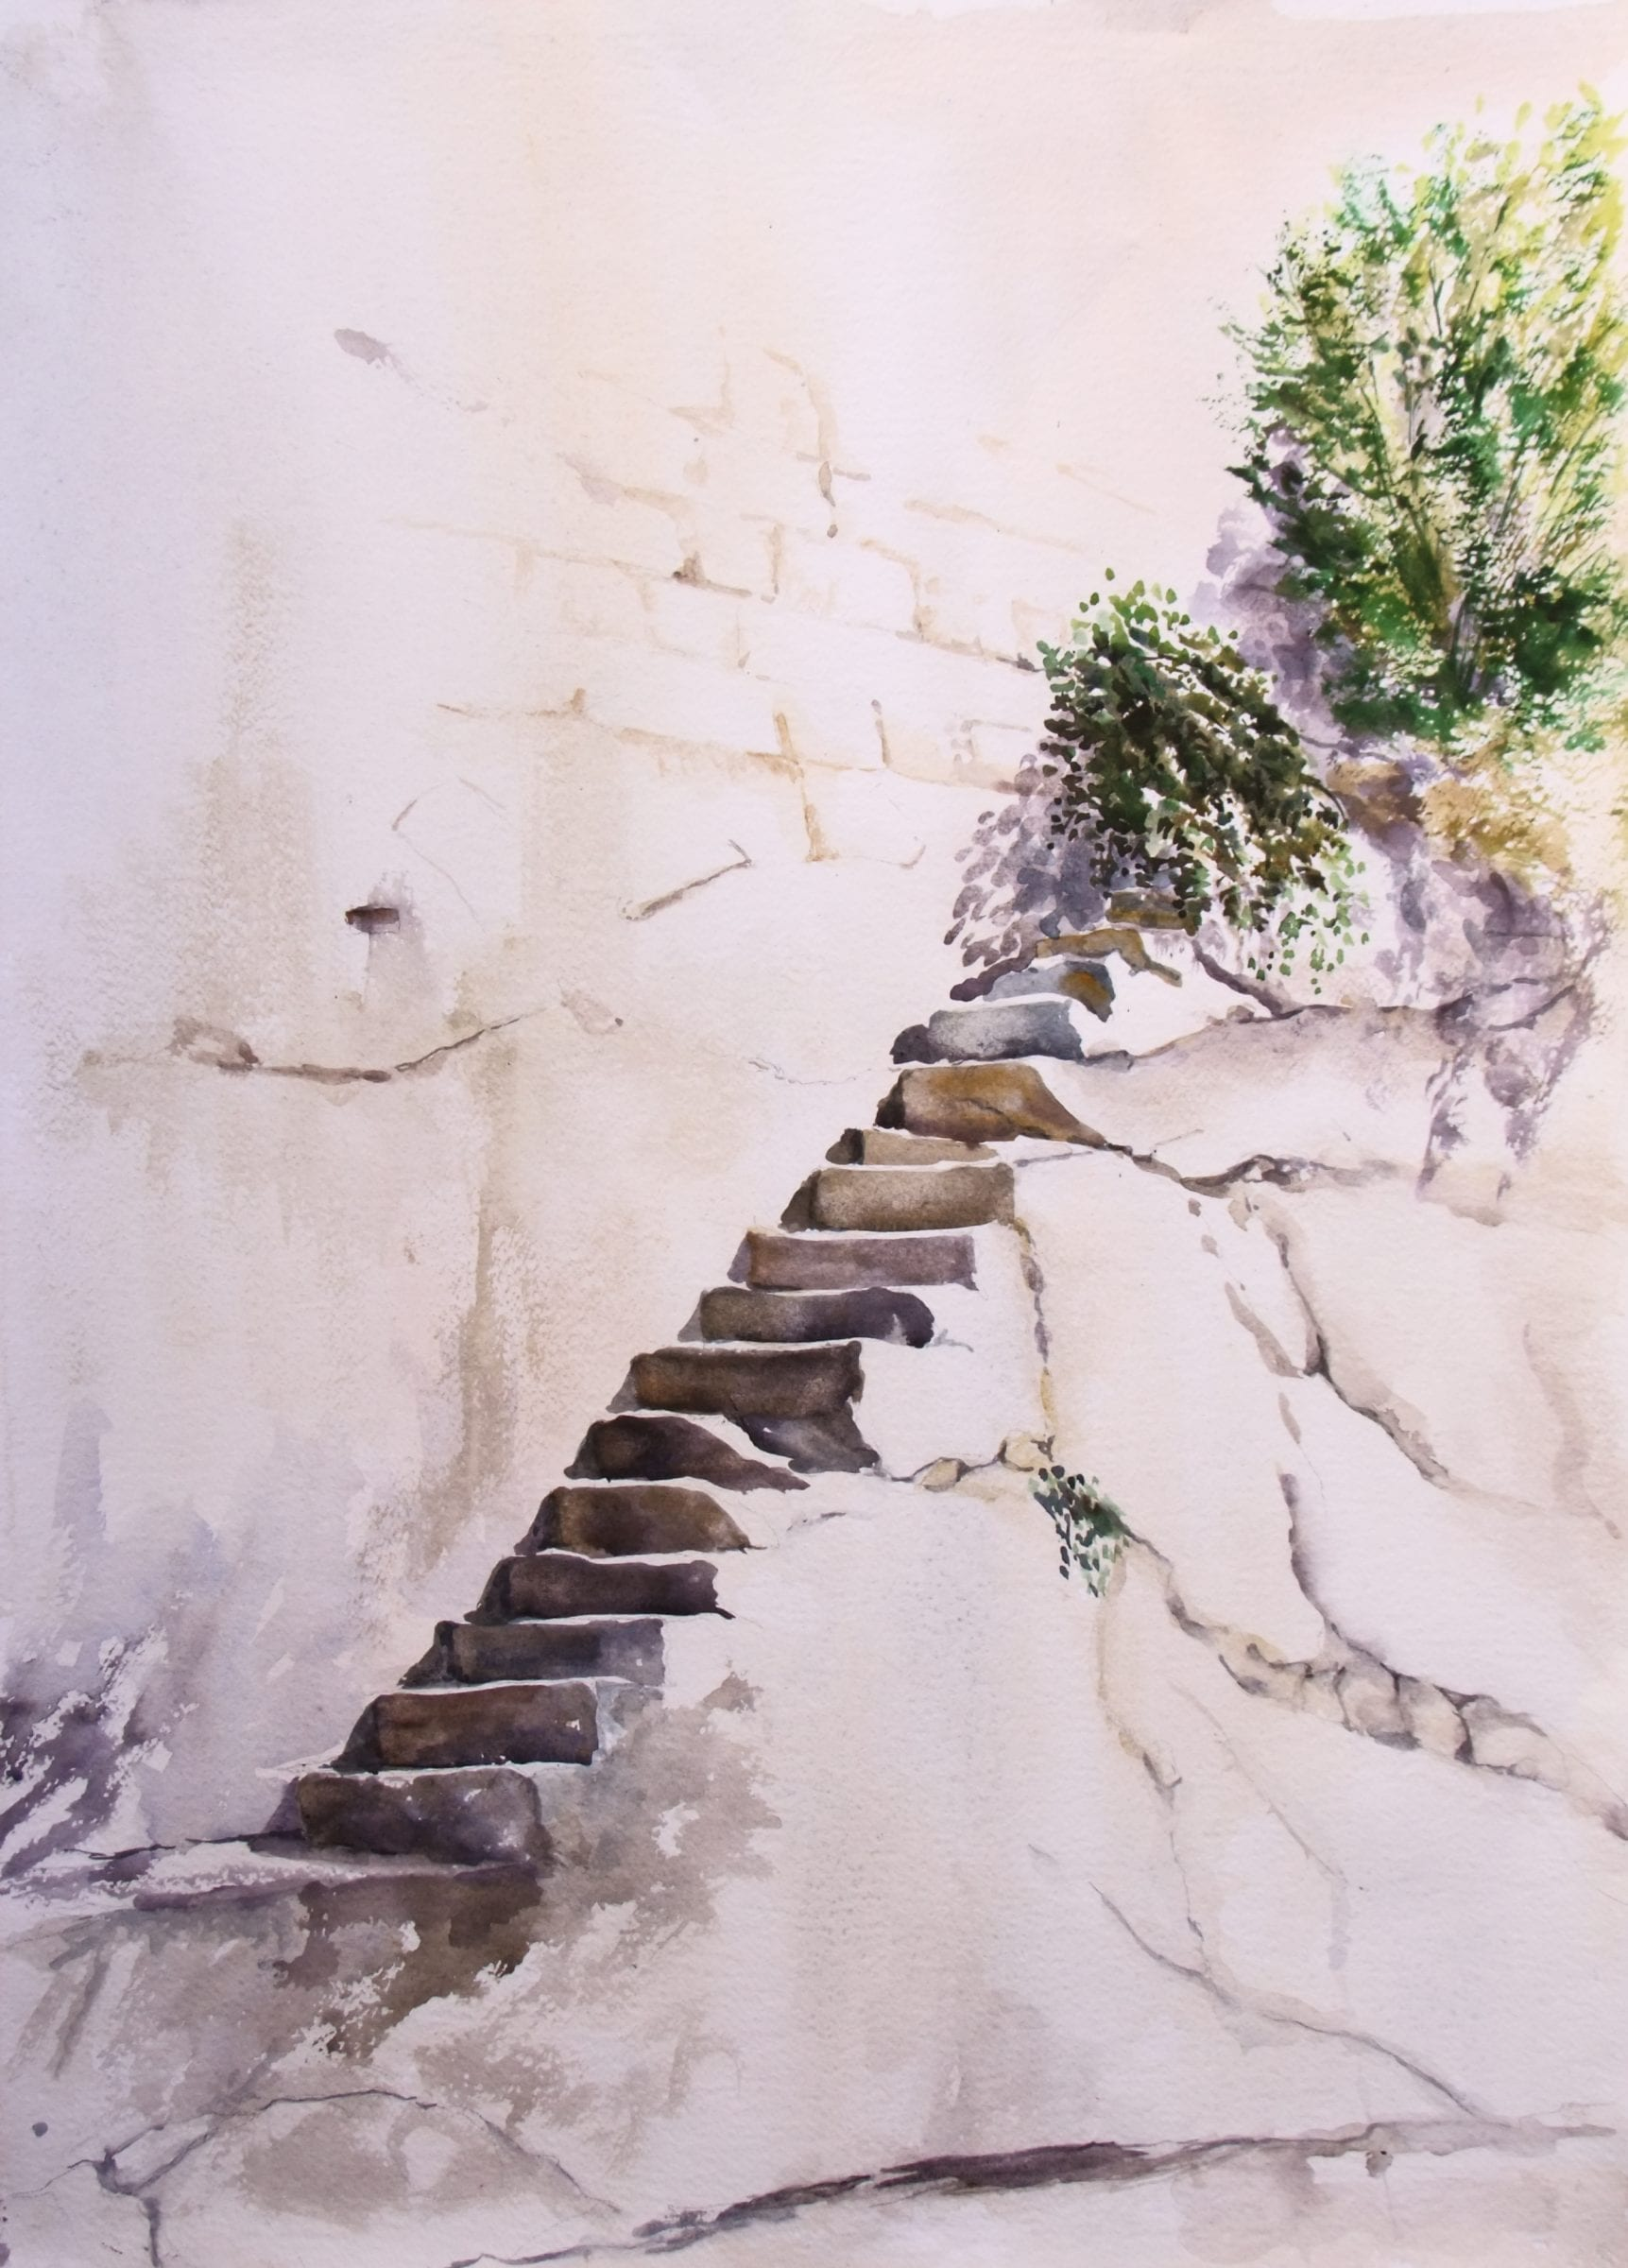 Steps in the Bastion, going nowhere